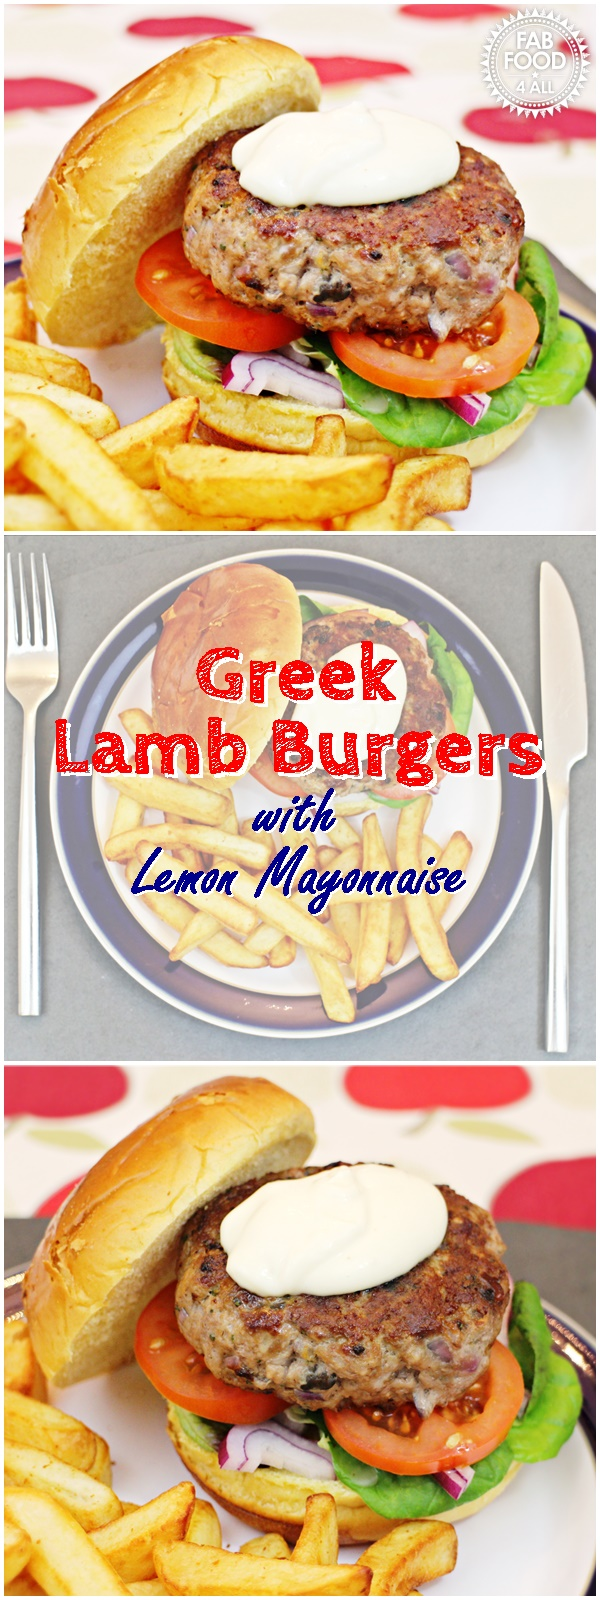 Greek Lamb Burgers with Lemon Mayonnaise, so quick, easy and delicious! #lamb #lambrecipes #mincedlamb #mincedlambrecipes #burgerrecipes #lambburgers #GreekRecipes #Greek